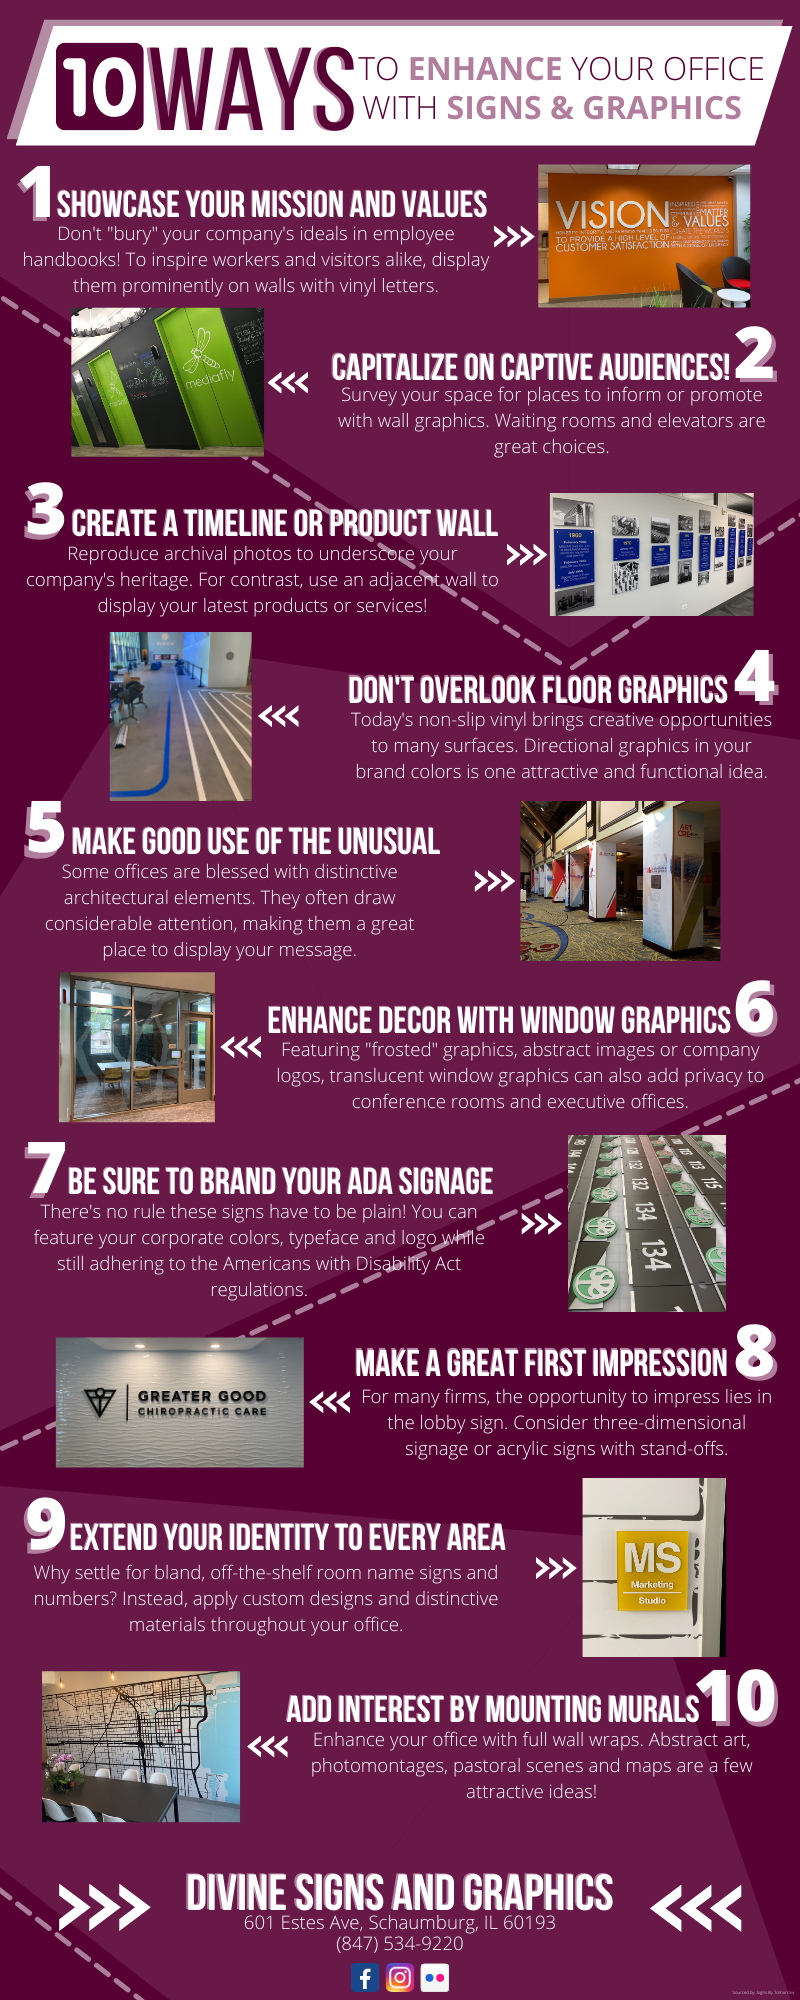 10 Ways To Enhance Your Office With Signs And Graphics